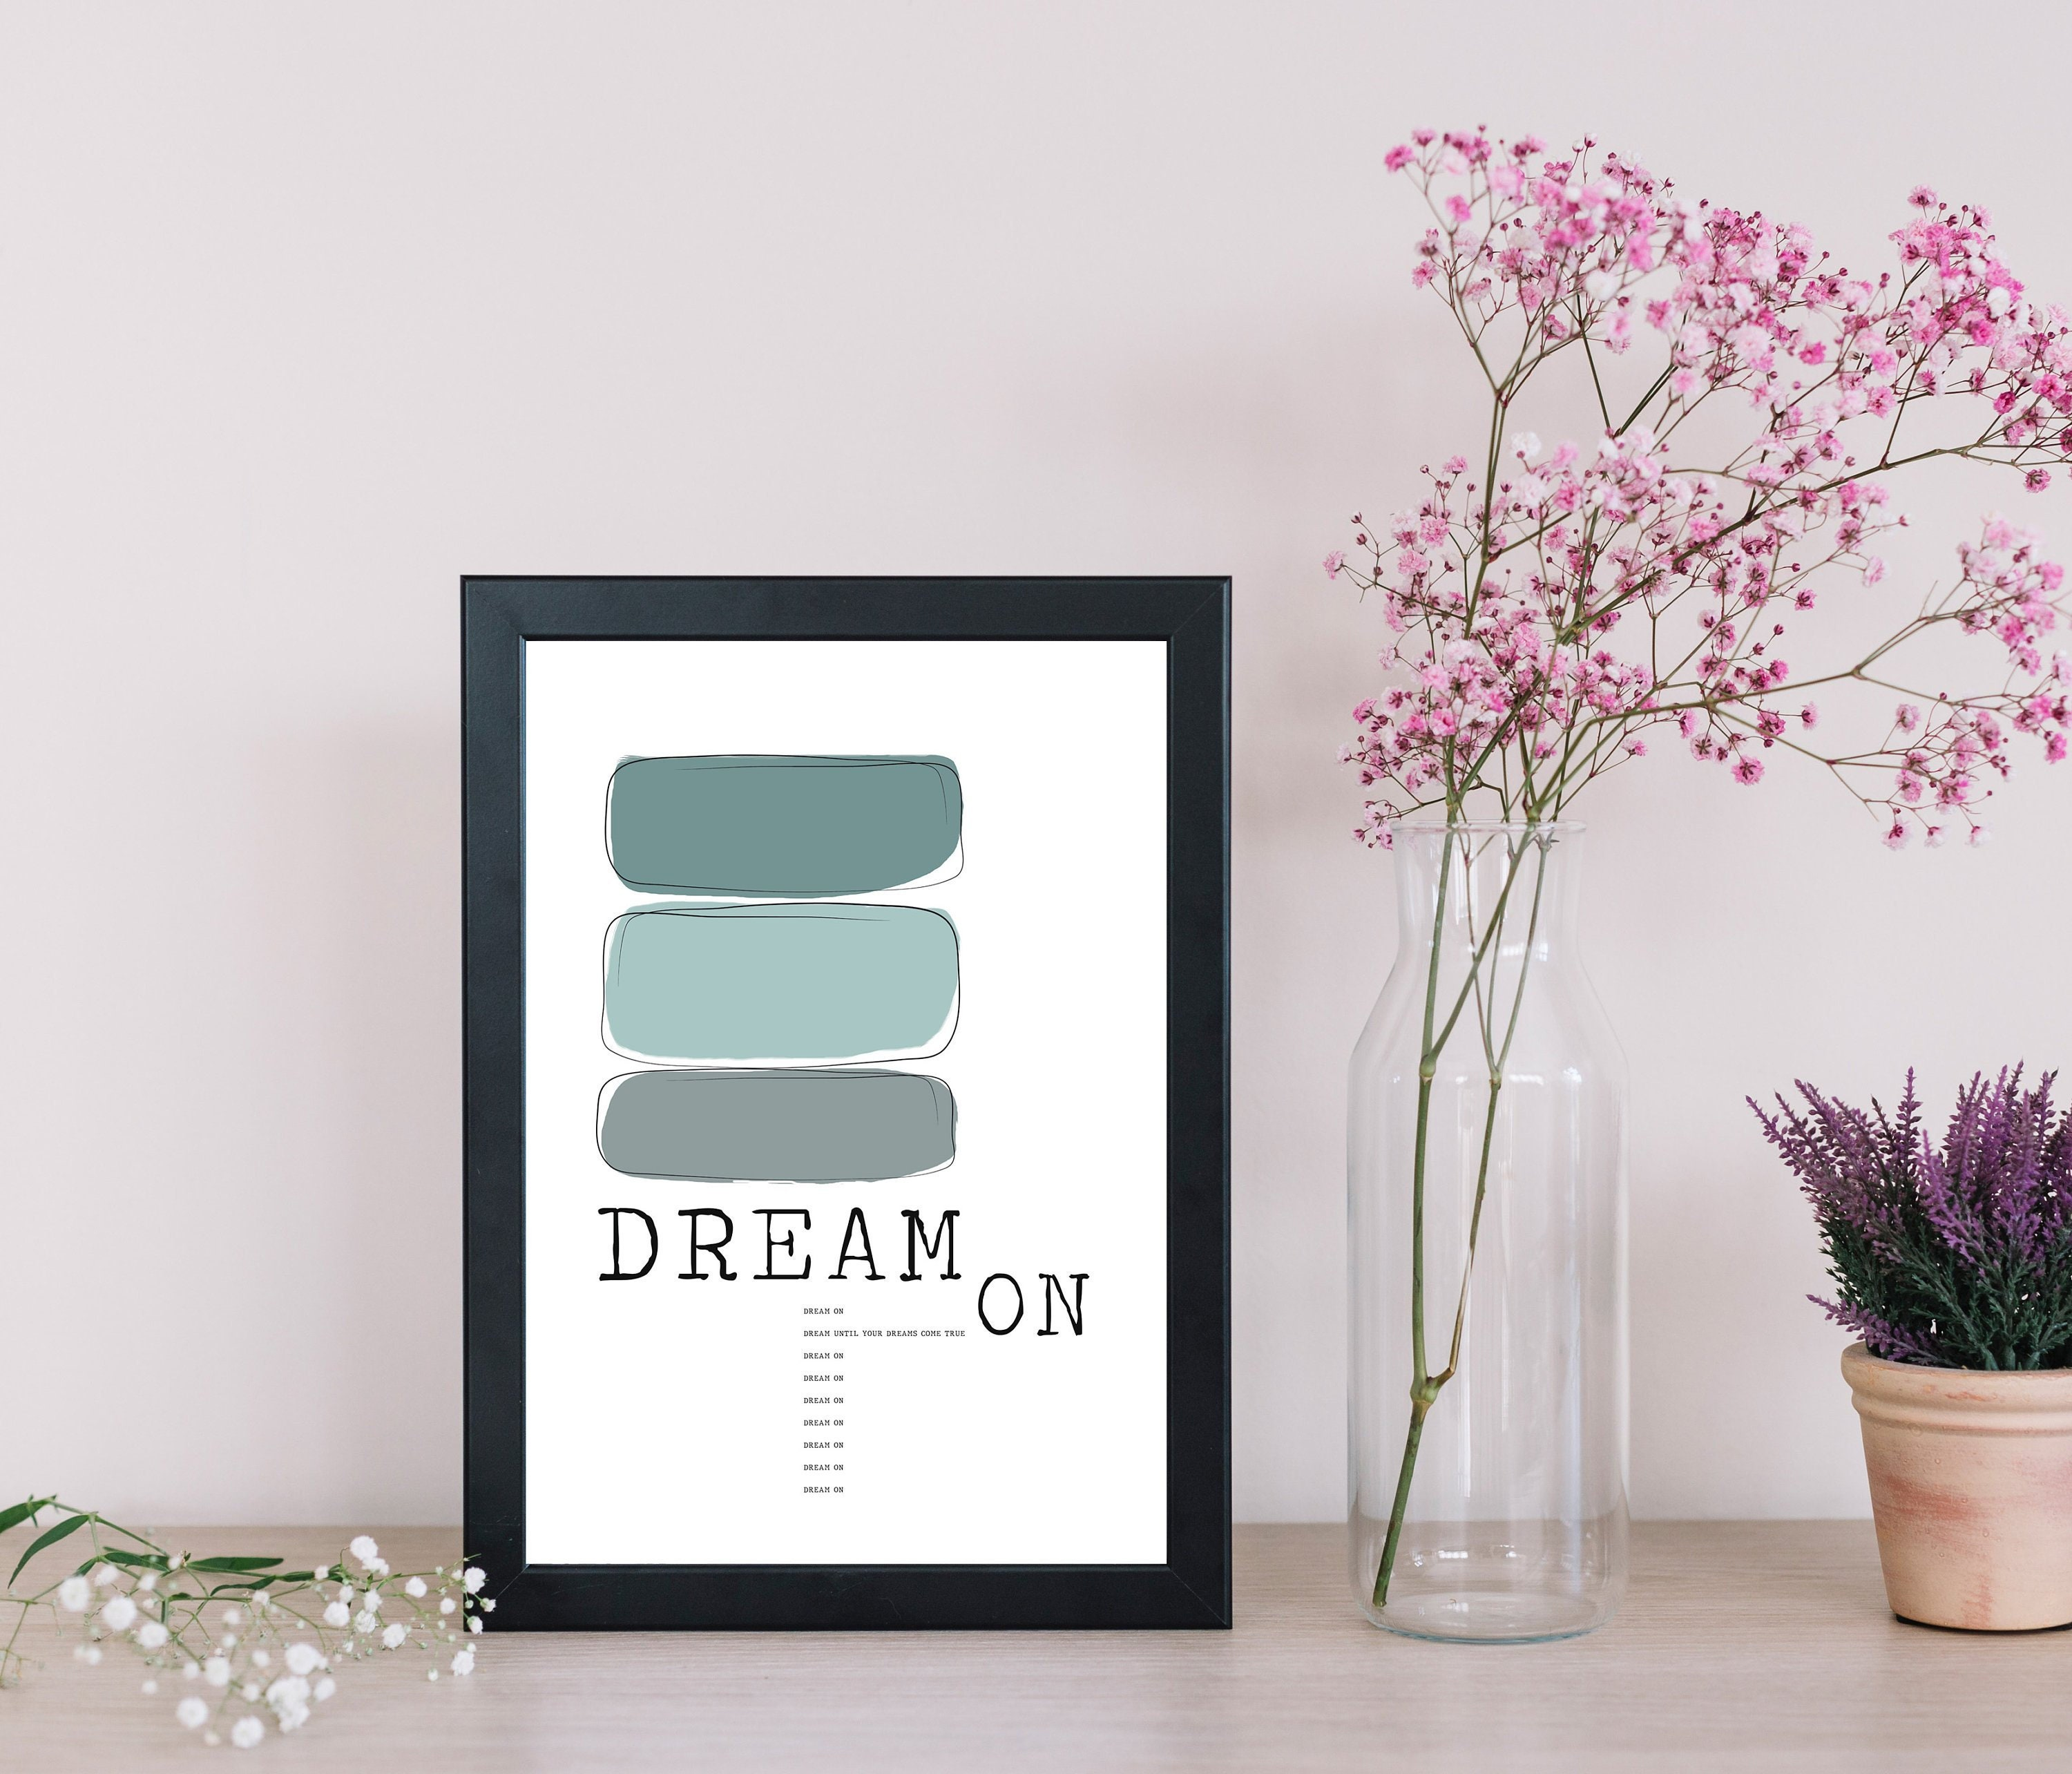 stampa poster dream on arredamento casa stampa